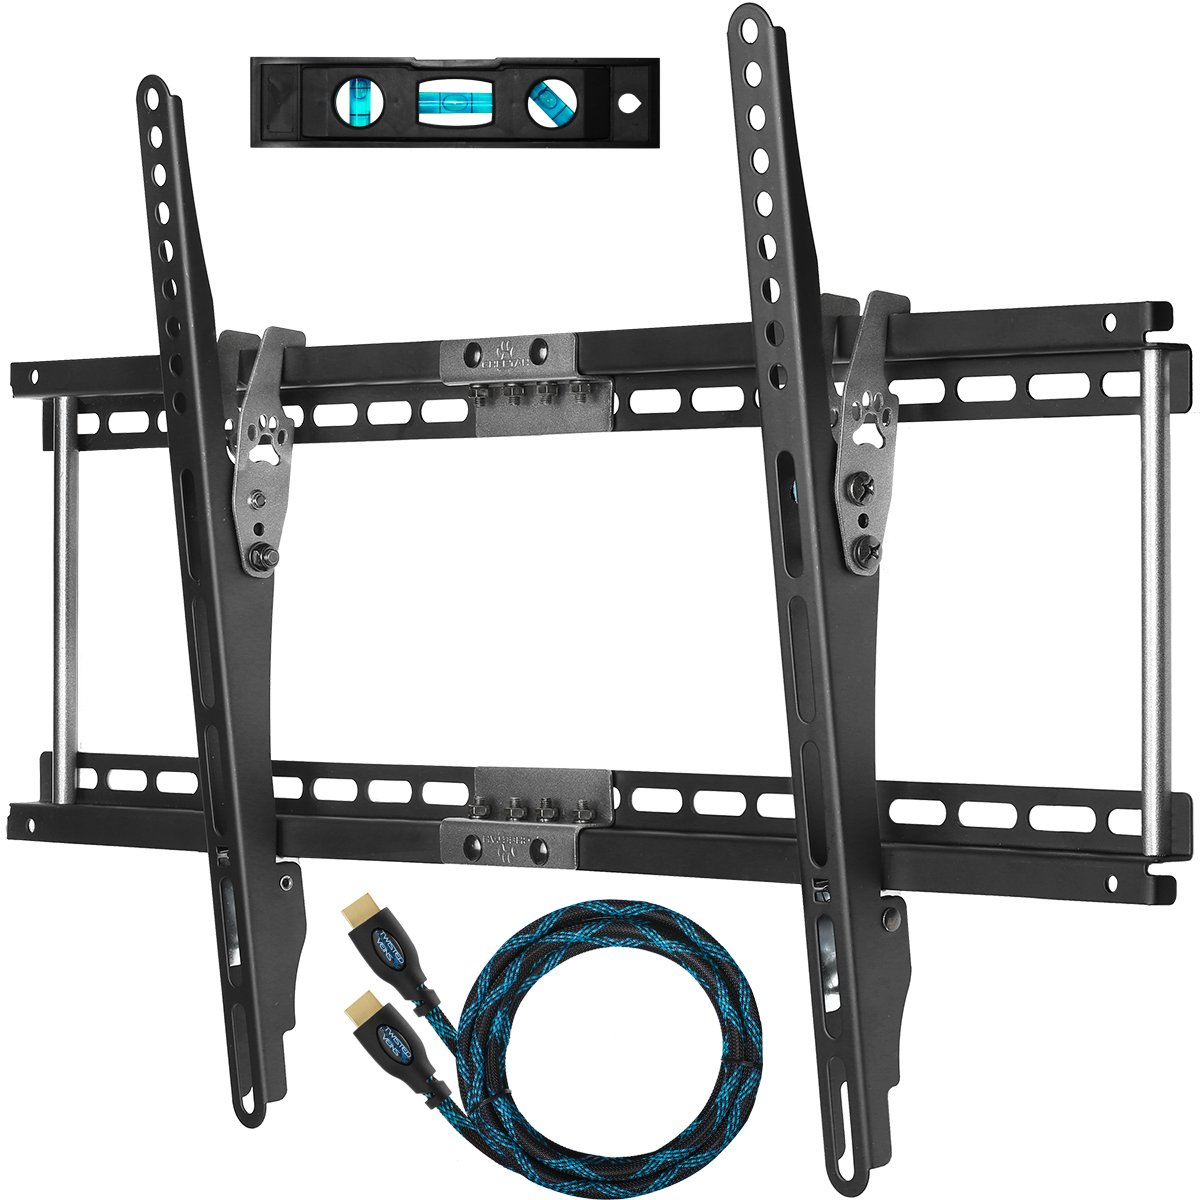 Image result for 3 Easy Benefits To TV Wall Mounts